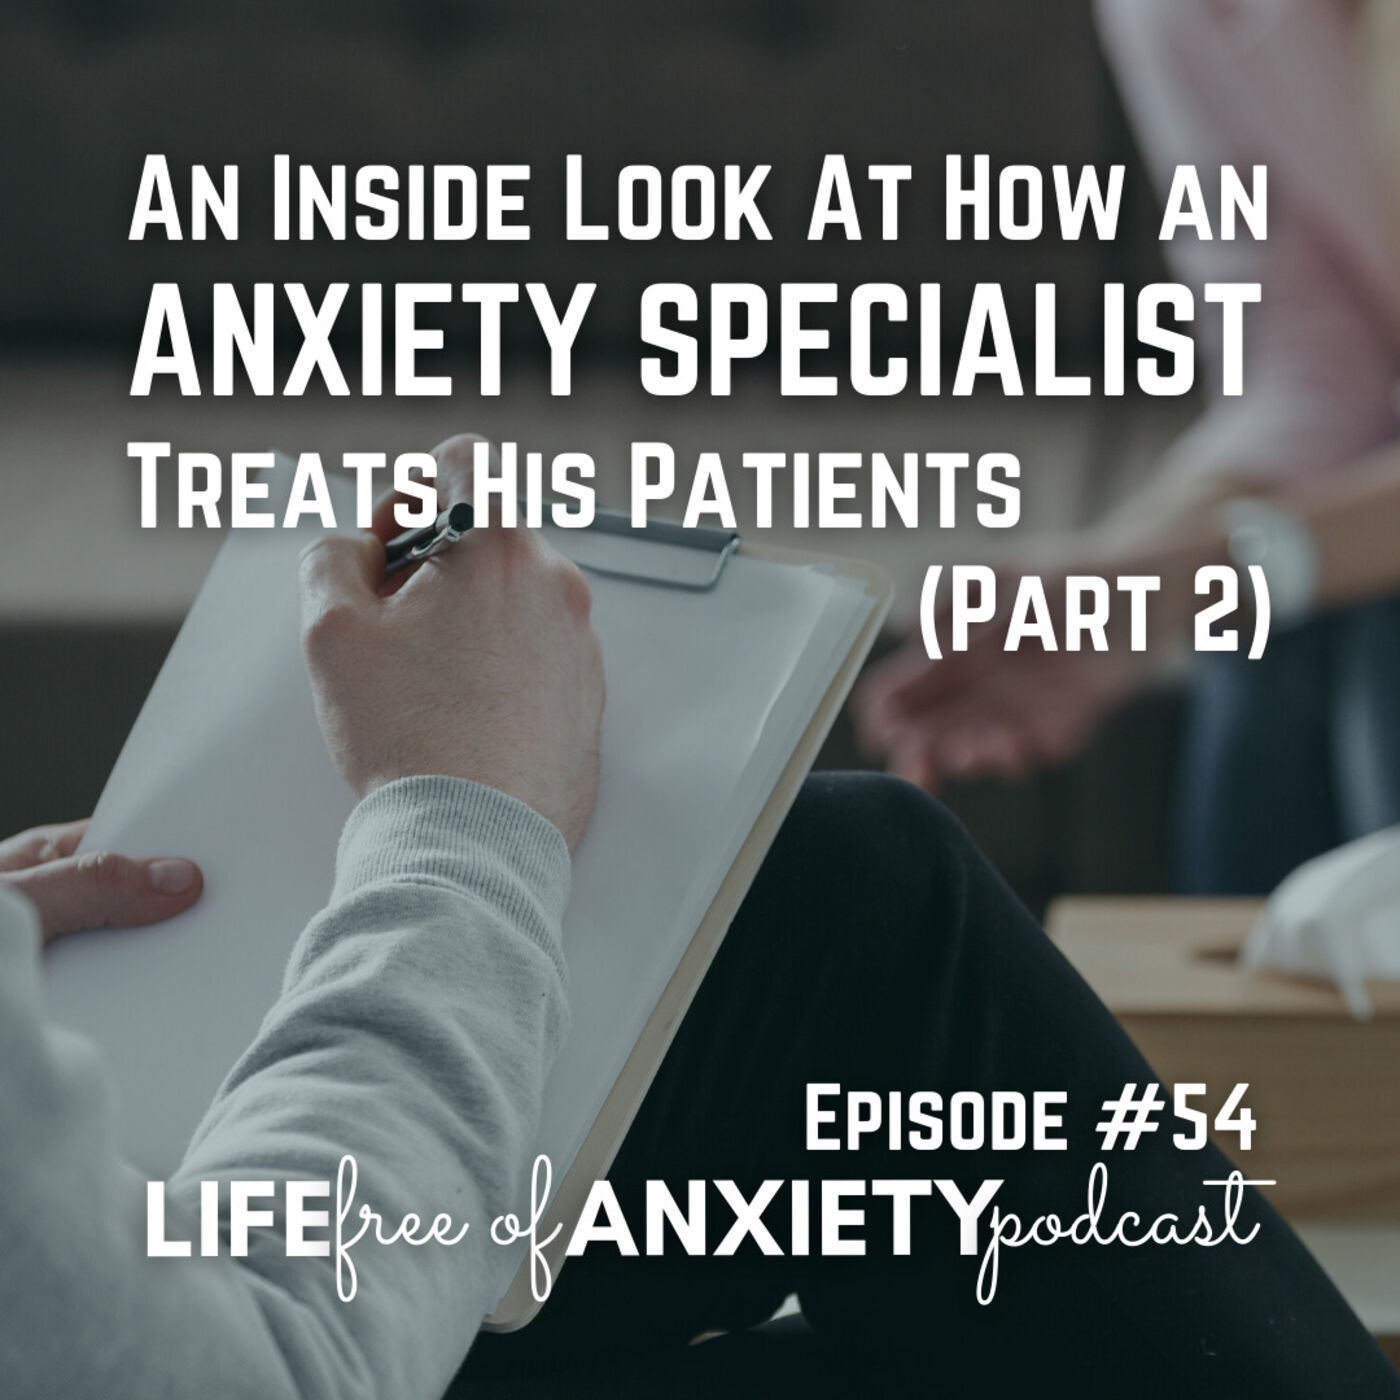 E054 - An inside look at how an anxiety specialist treats his patients (Part 2)